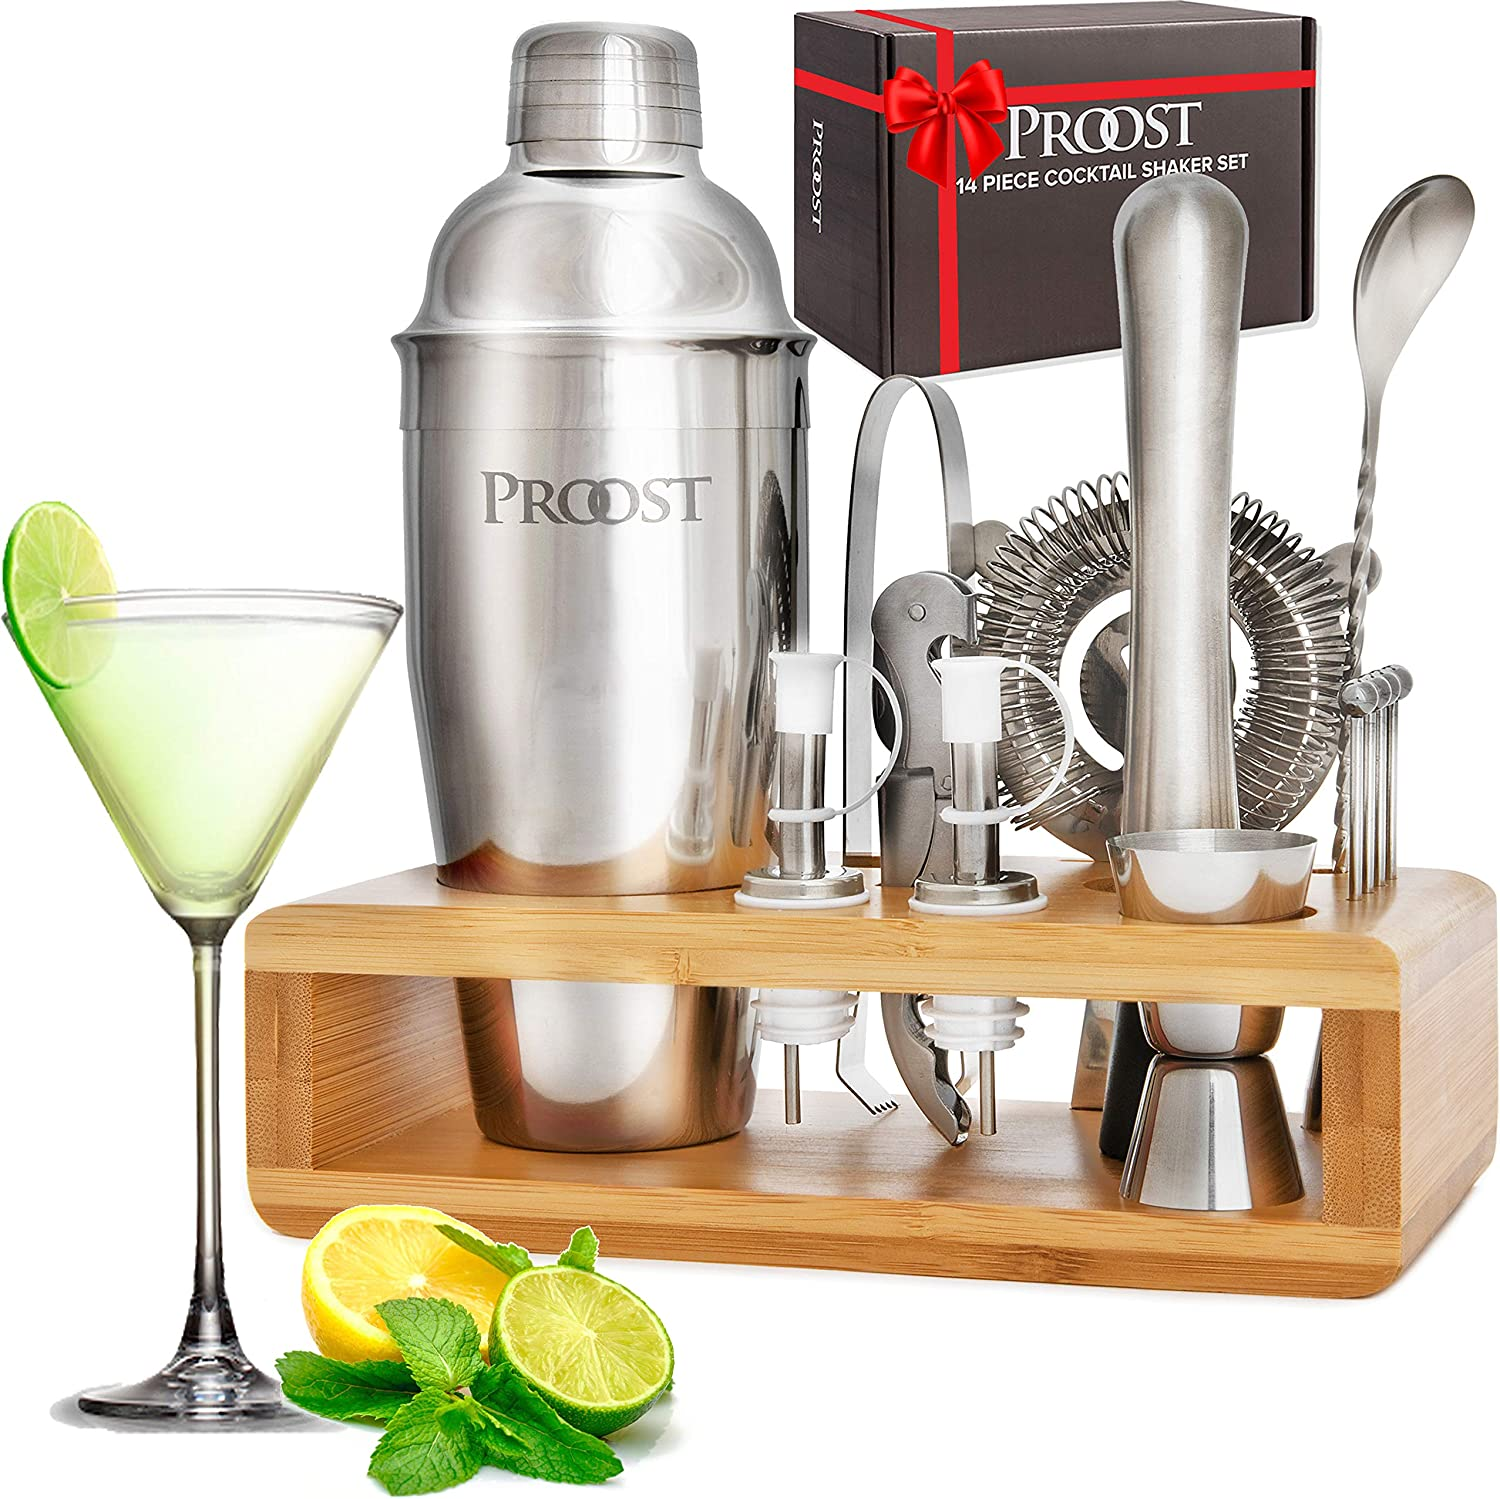 14-piece Stainless Steel Cocktail Shaker Set